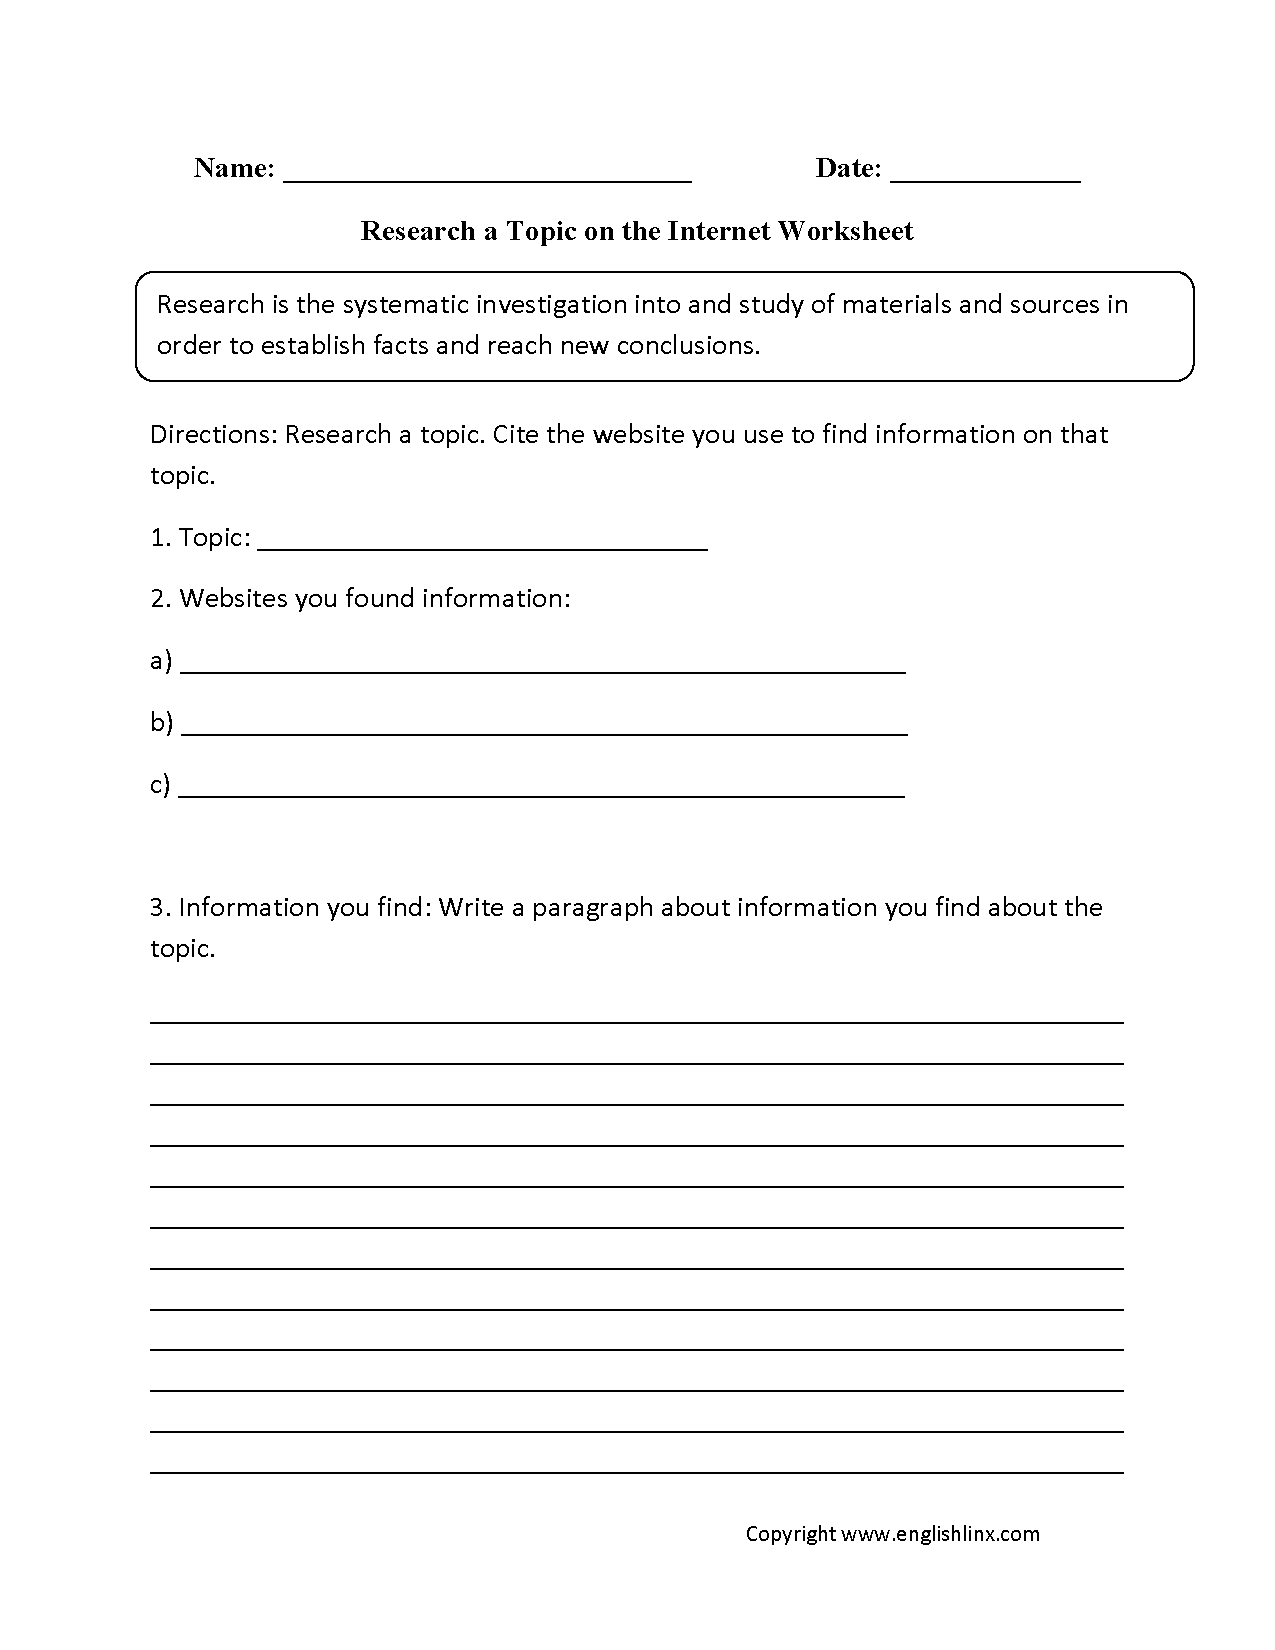 Aldiablosus  Seductive Englishlinxcom  Research Worksheets With Marvelous On The Internet Worksheet With Archaic Grade  Science Worksheets Free Printable Also Math Multiplication Worksheets  Problems In Addition Grammar Test Worksheets And Coordinates Worksheets As Well As Carnivores And Herbivores Worksheet Additionally Spelling Rules For Kids Worksheets From Englishlinxcom With Aldiablosus  Marvelous Englishlinxcom  Research Worksheets With Archaic On The Internet Worksheet And Seductive Grade  Science Worksheets Free Printable Also Math Multiplication Worksheets  Problems In Addition Grammar Test Worksheets From Englishlinxcom